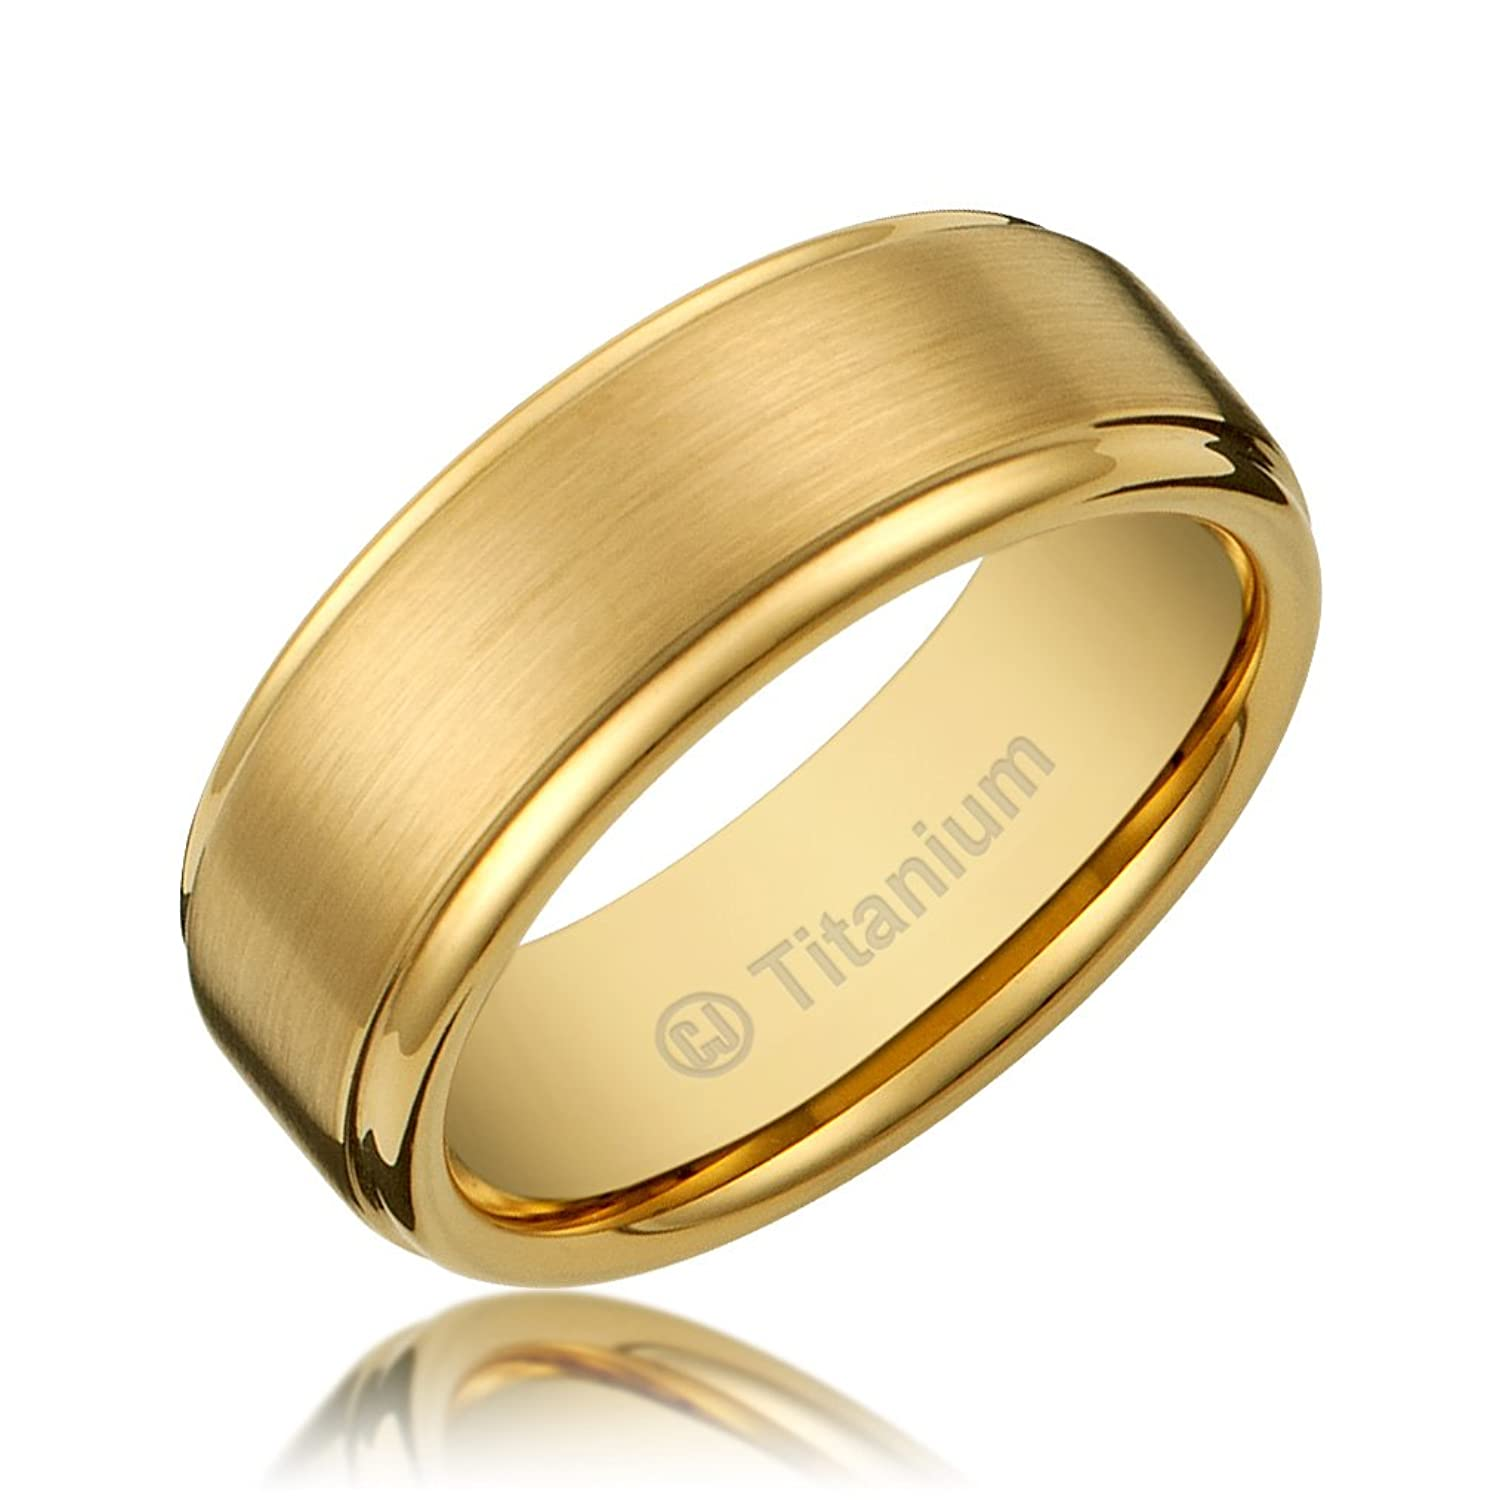 8mm mens titanium gold plated ring wedding band with flat brushed top and polished finish edgesamazoncom - Wedding Band Ring